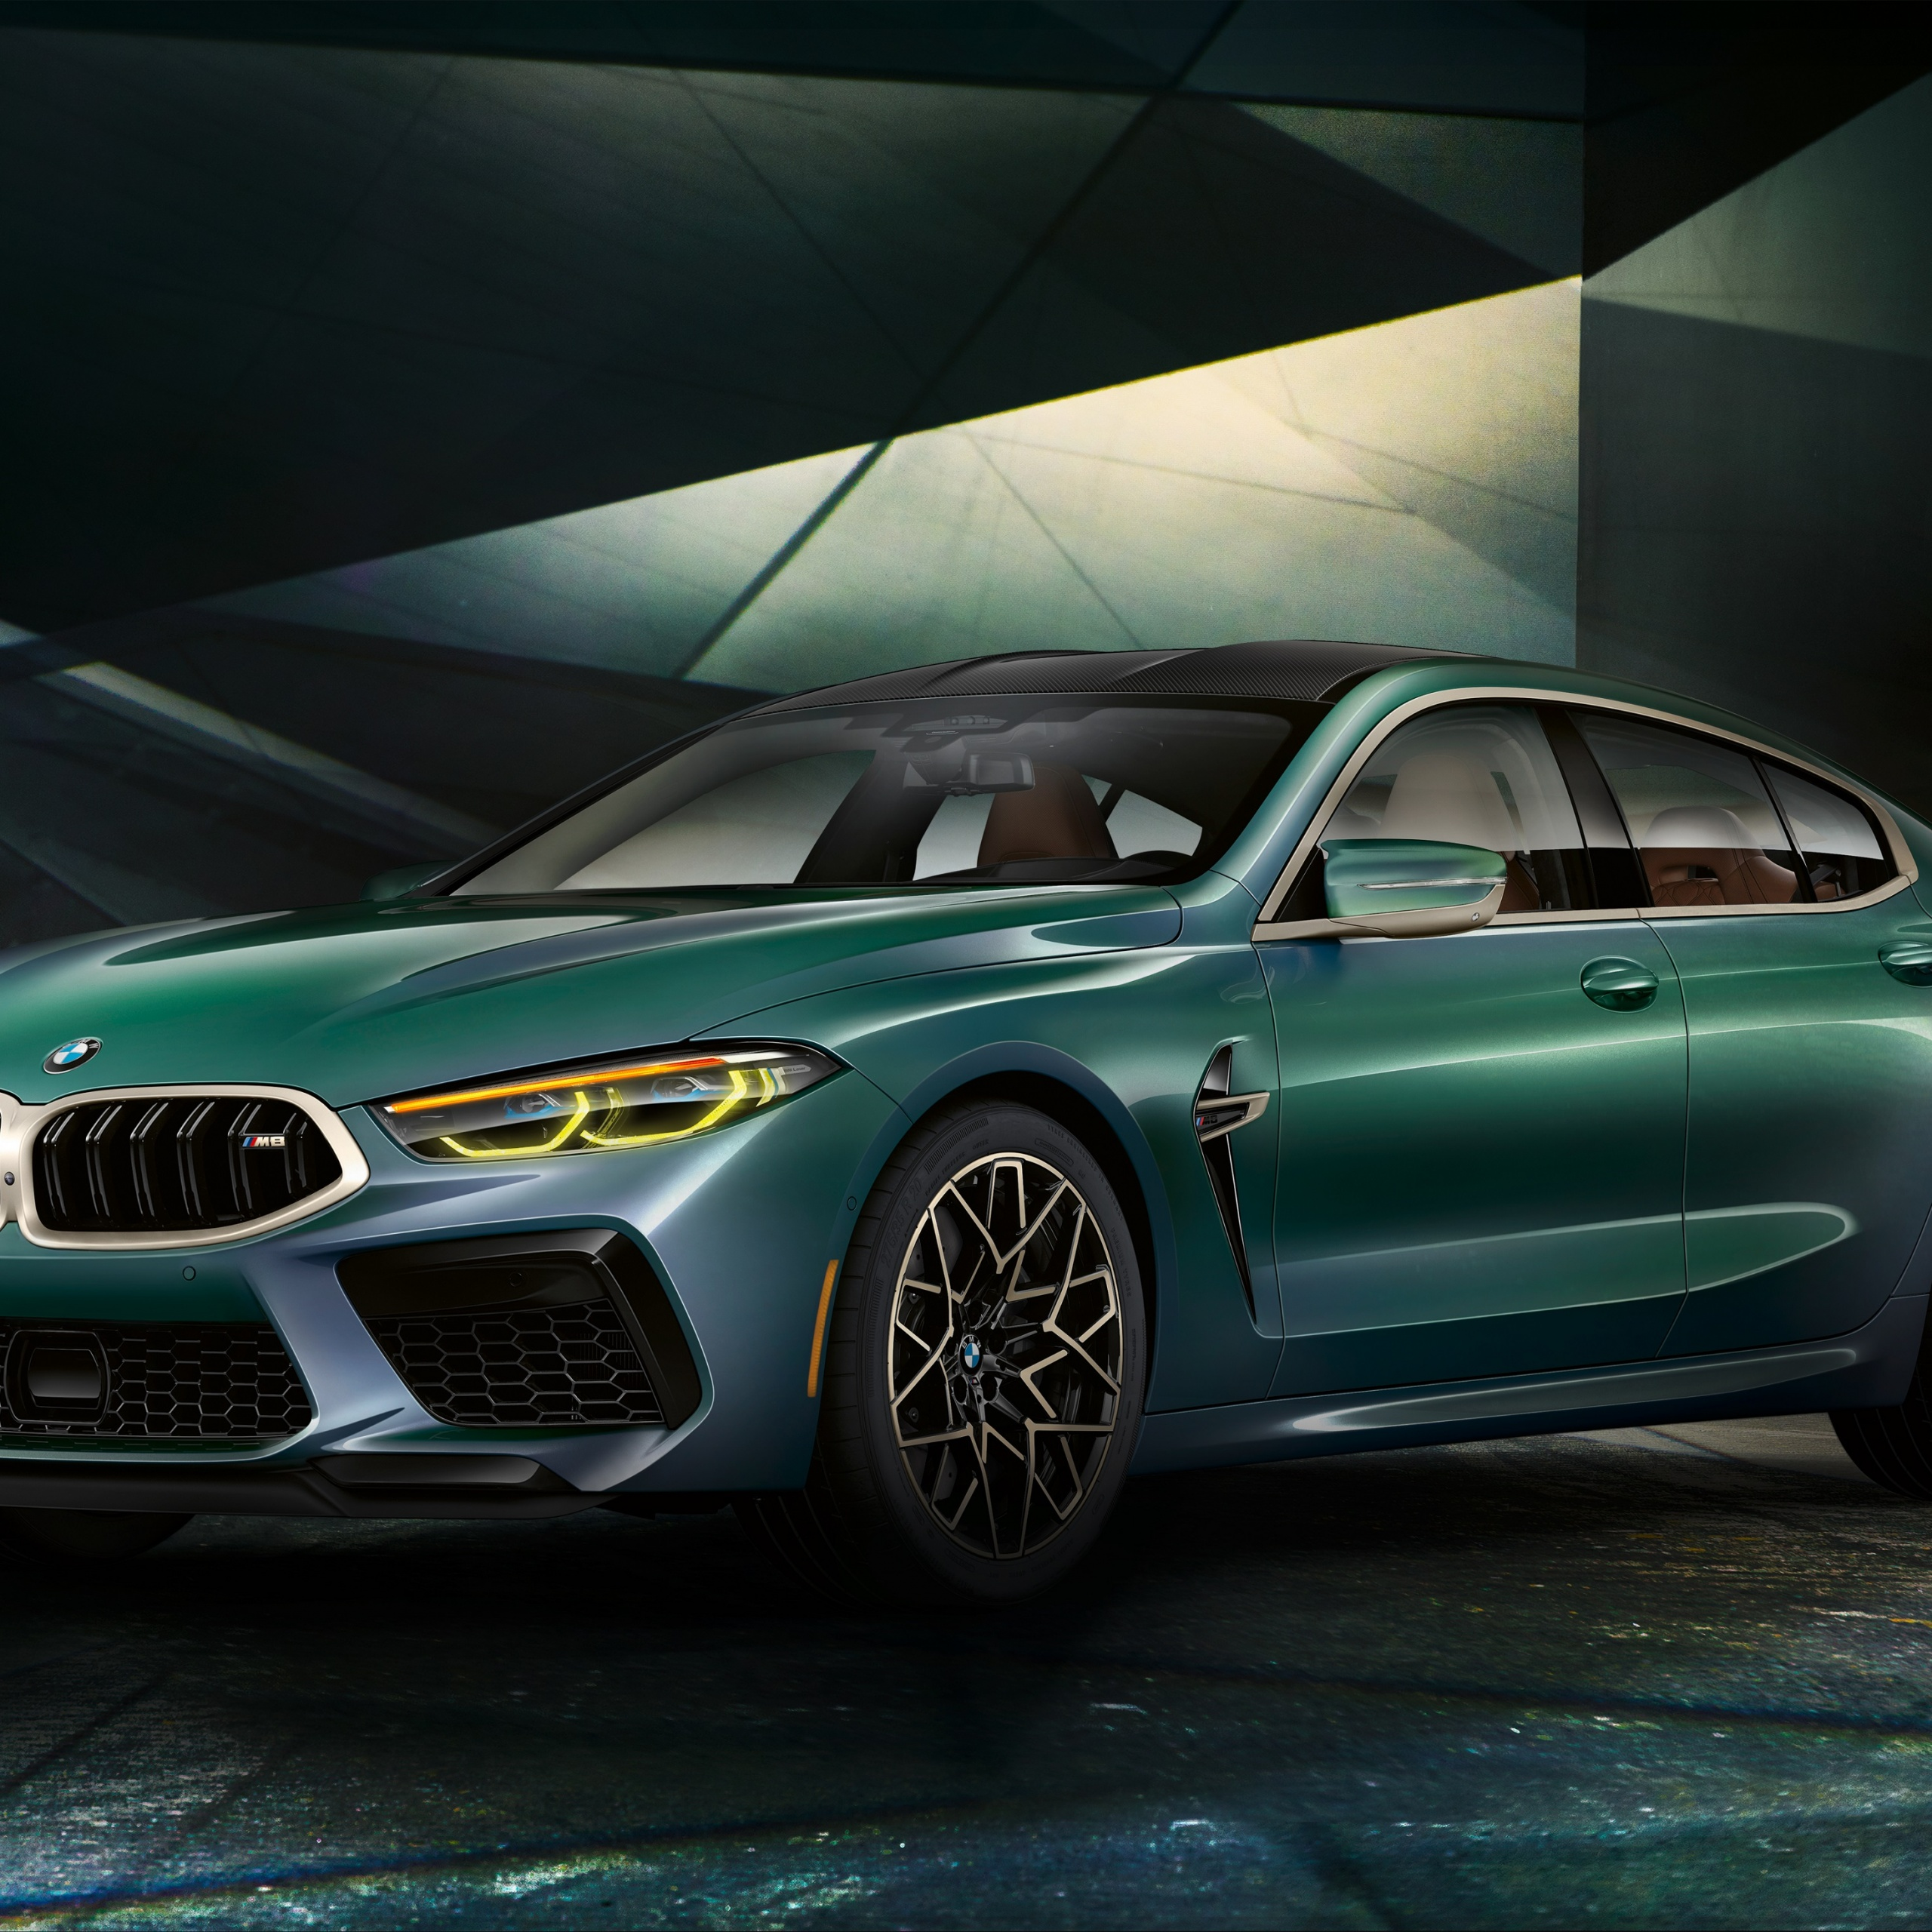 2020 Bmw M8 Red: 4K Wallpaper BMW M8 Gran Coupe, First Edition, 2020, 5K